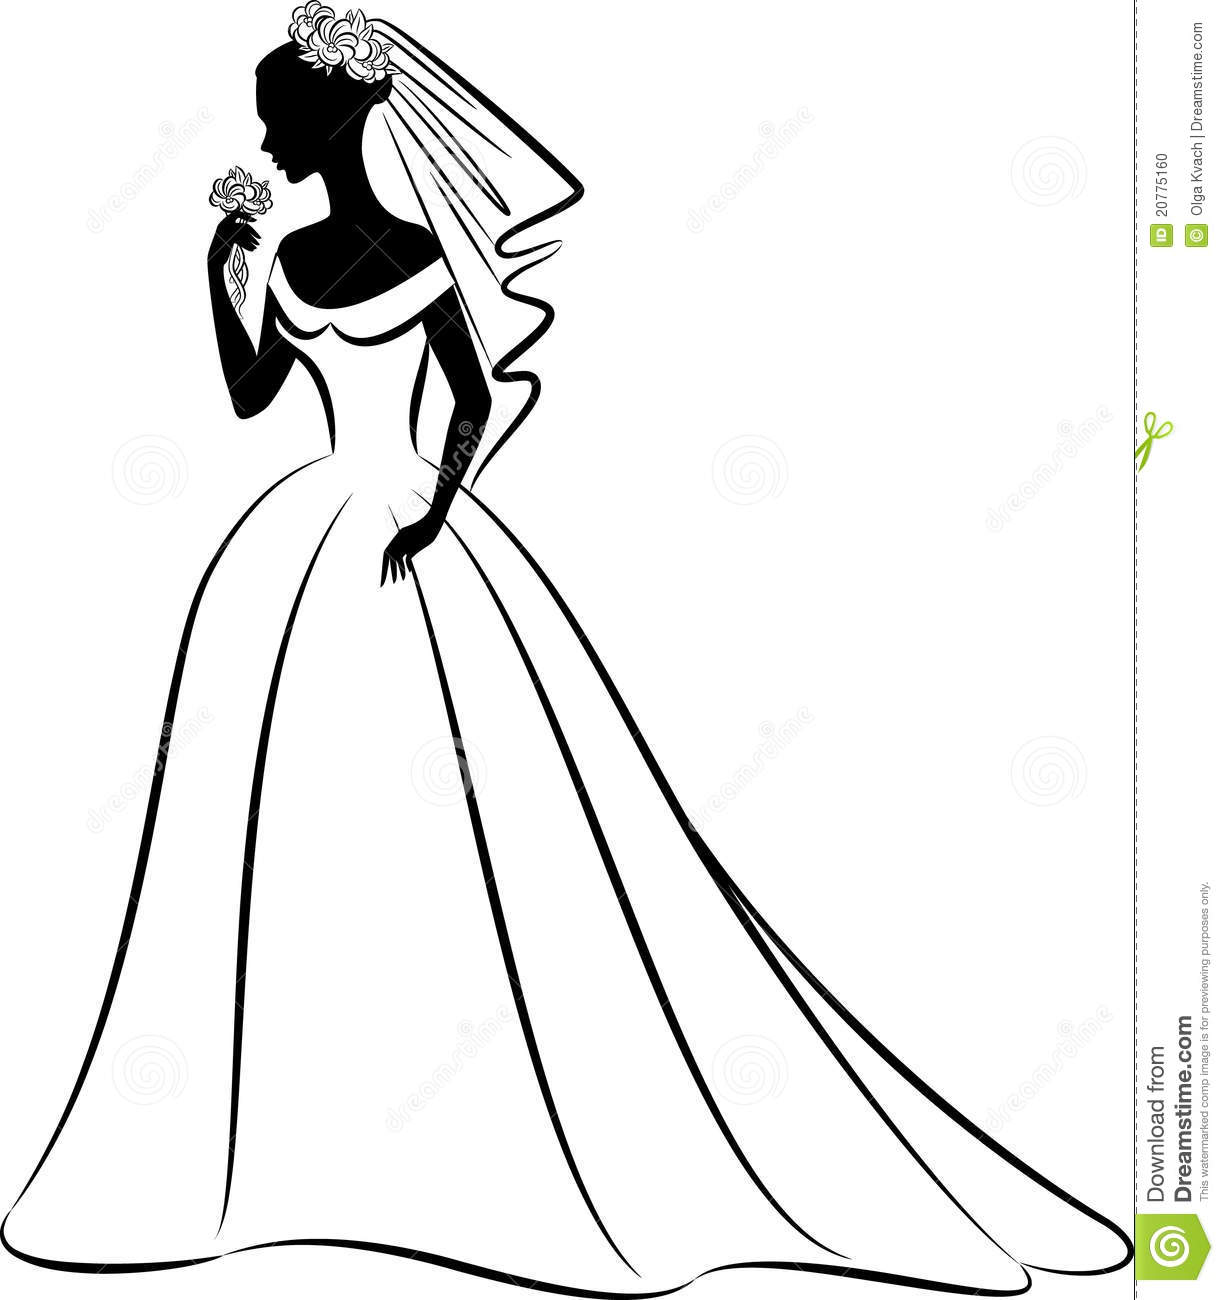 Wedding Dress Clipart Outline Clipart Pa-Wedding Dress Clipart Outline Clipart Panda Free Clipart Images-18